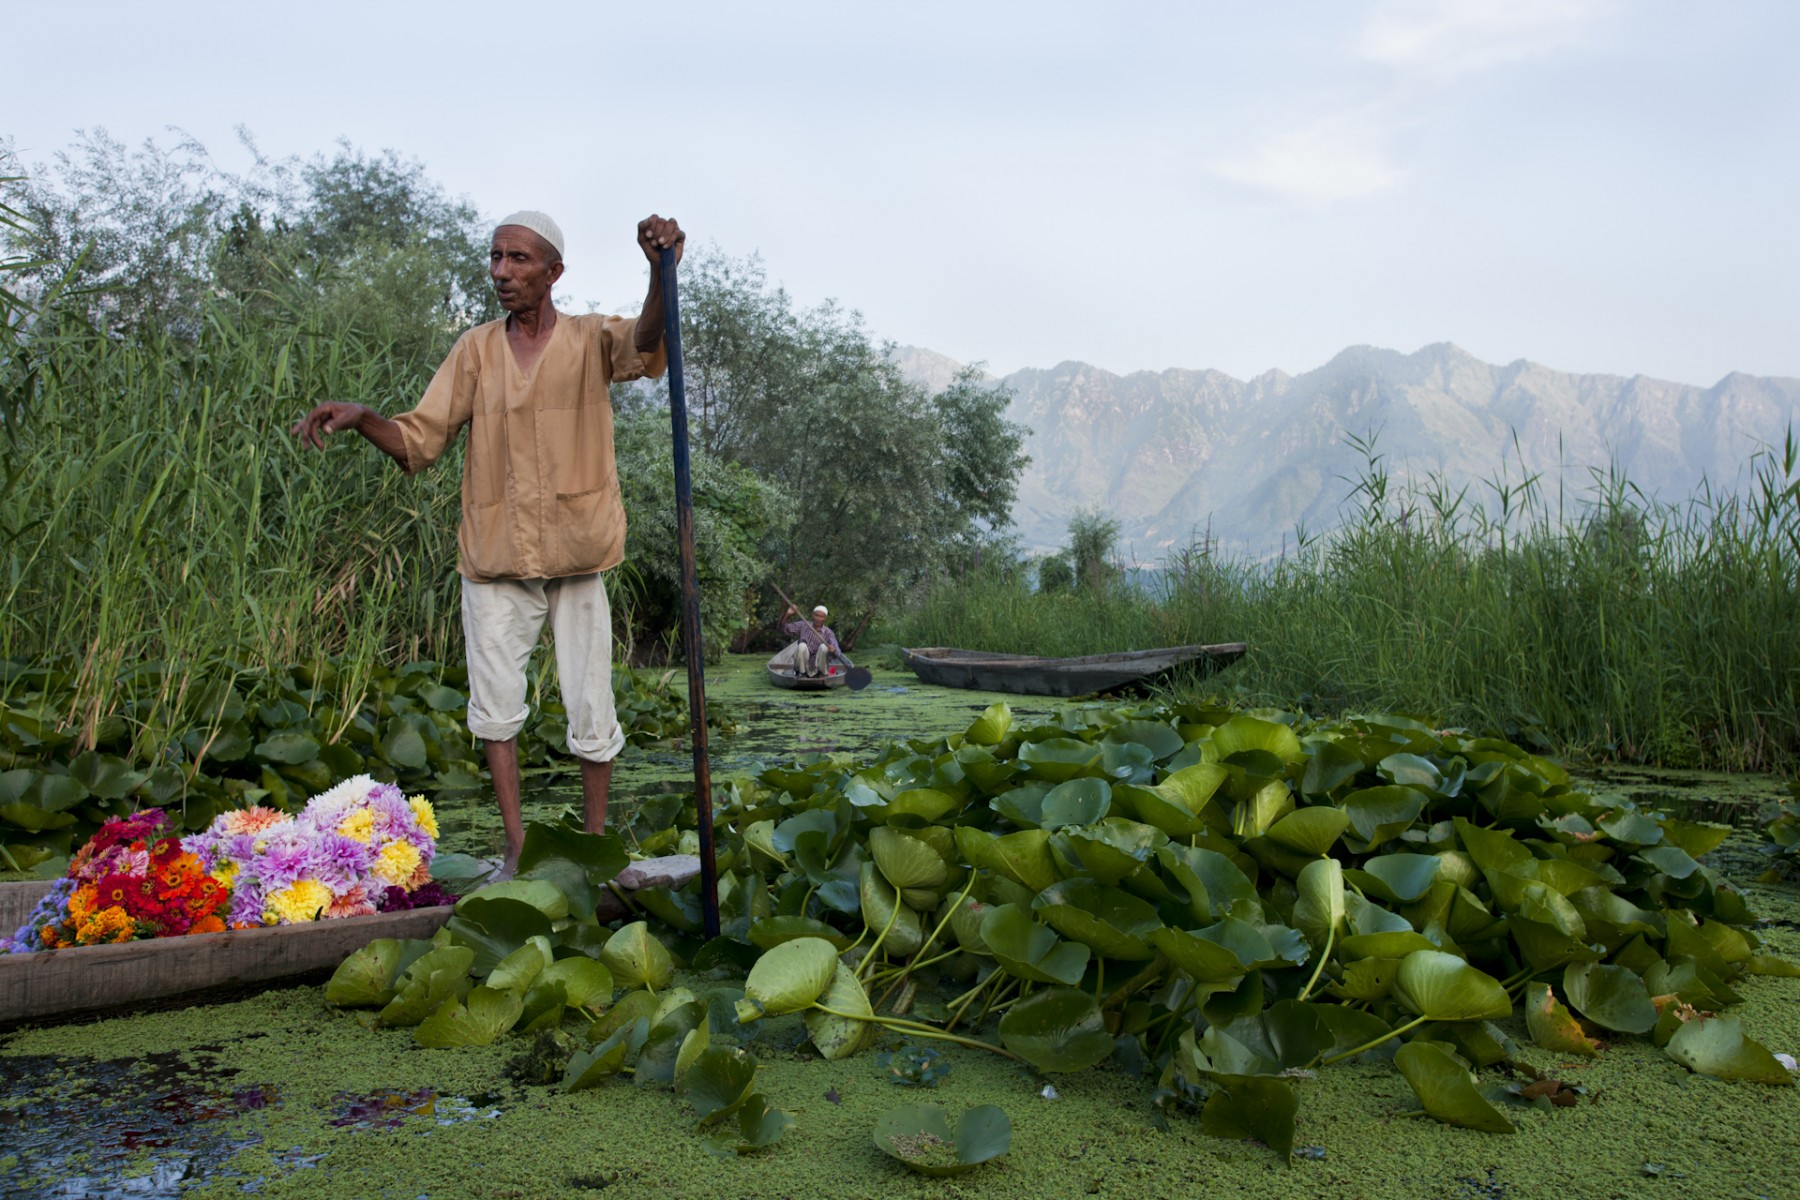 Flower seller Kashmir